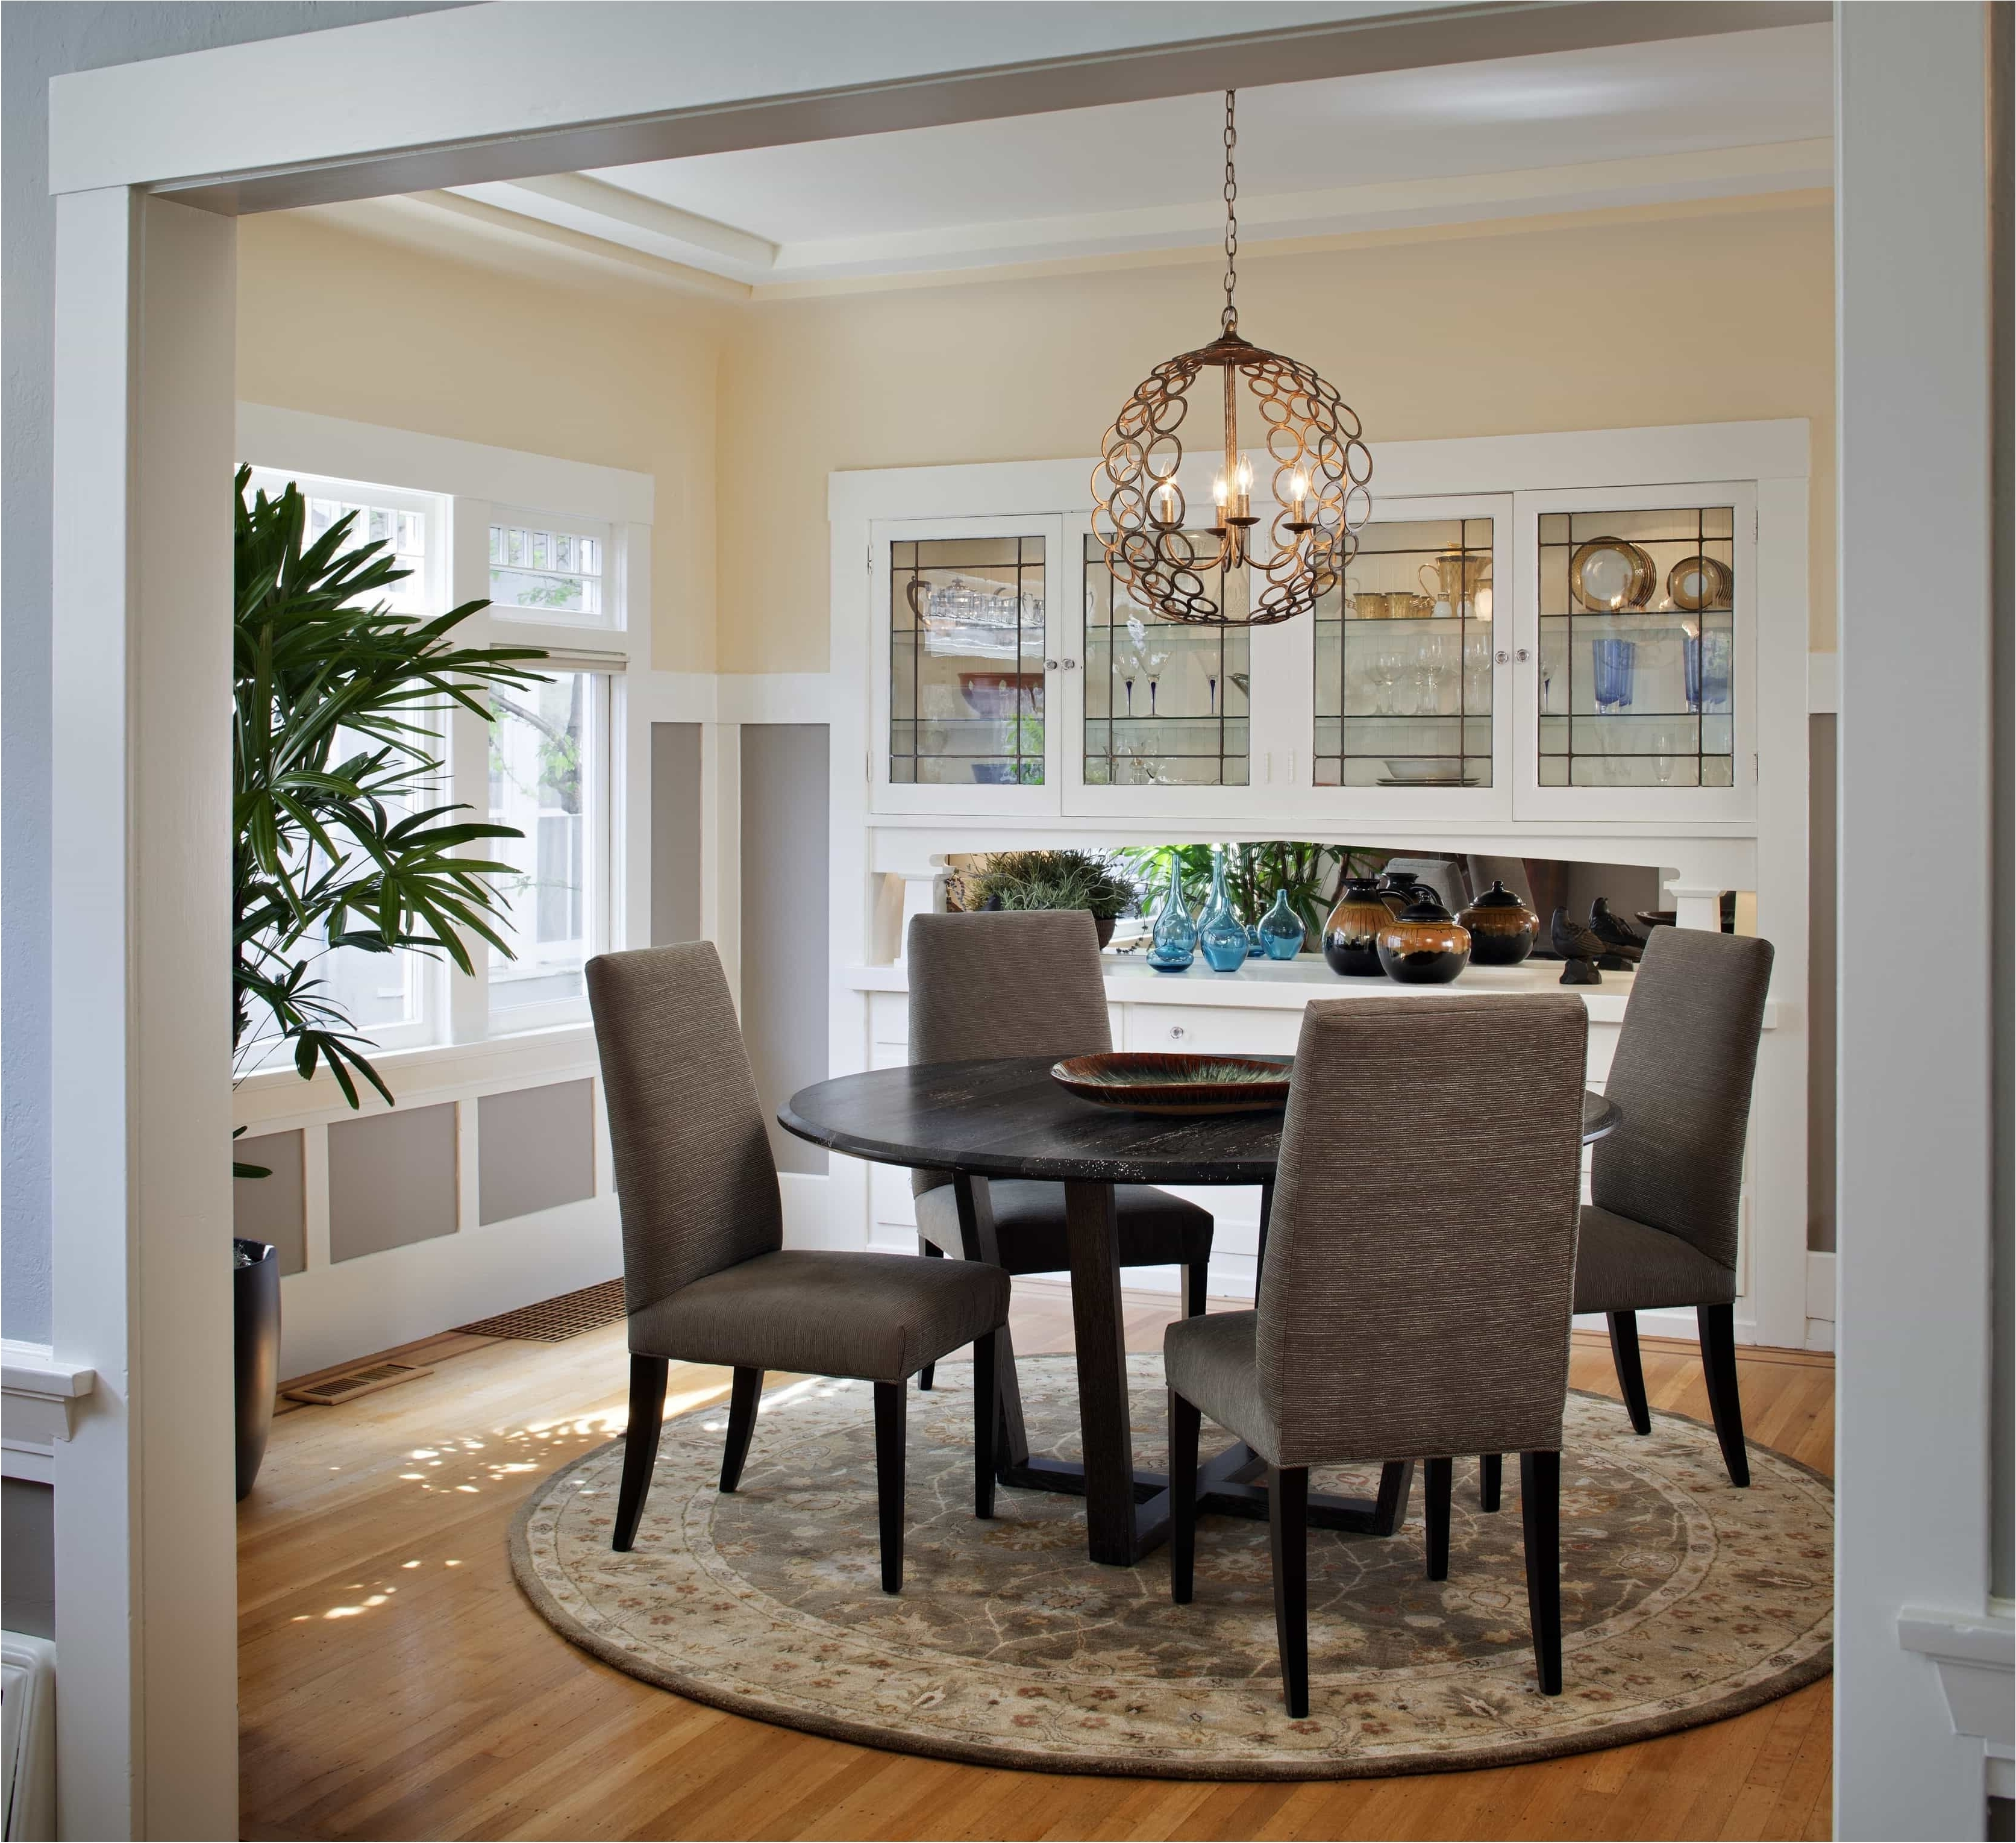 Craftsman Round Dining Tables Throughout Most Recently Released Magnificent Craftsman Lighting For Dining Room With Round Table (View 9 of 25)